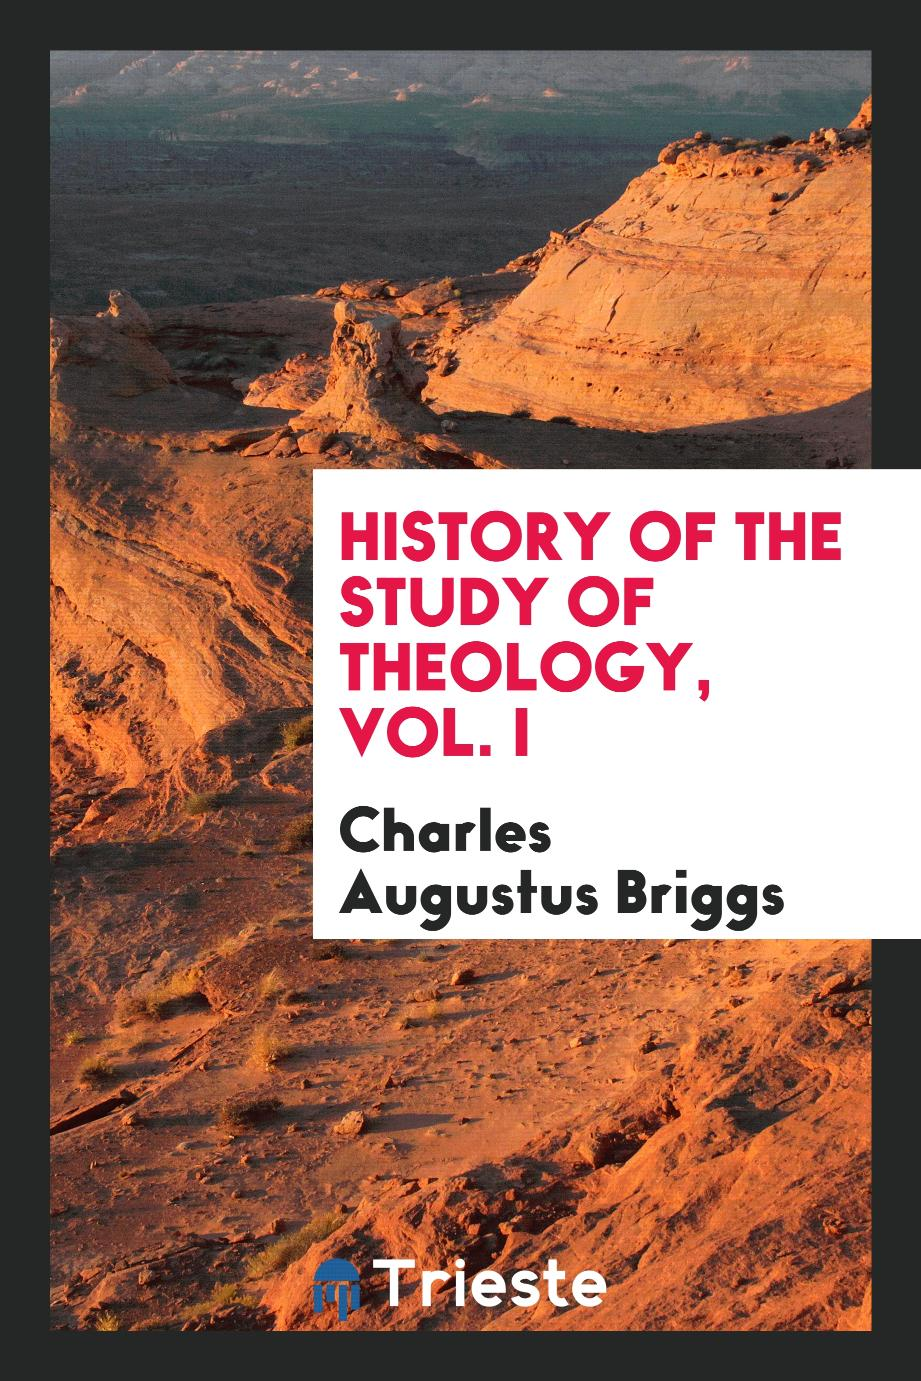 History of the study of theology, Vol. I